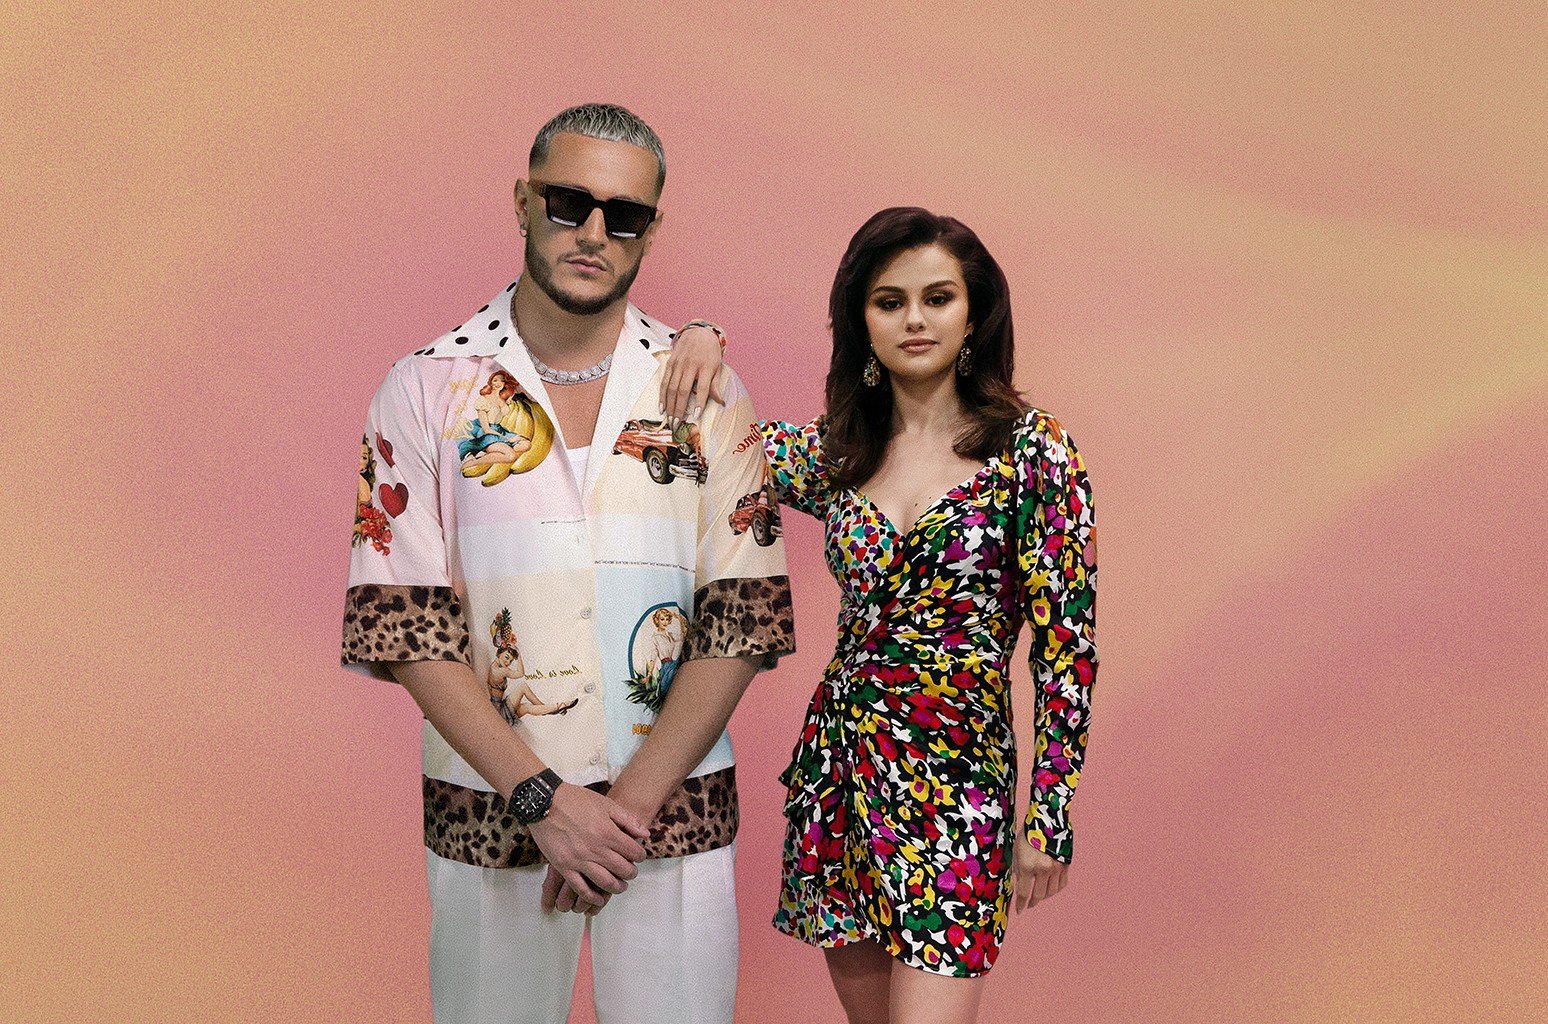 Fans Choose Selena Gomez & DJ Snake's 'Selfish Love' as This Week's Favorite New Music - Billboard